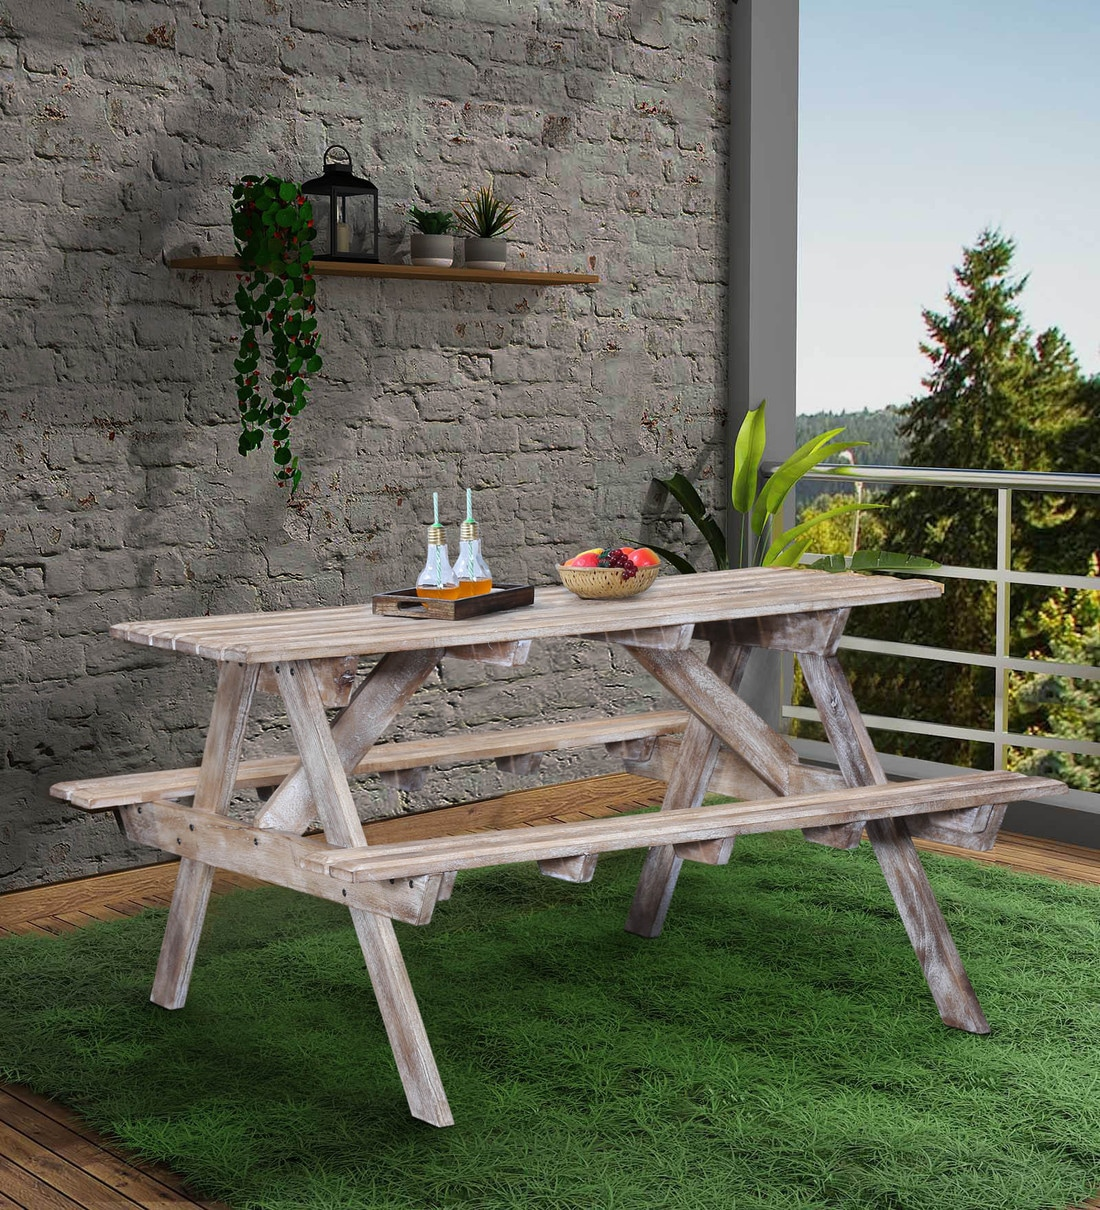 lomira solid wood 4 seater patio dining set in distress finish